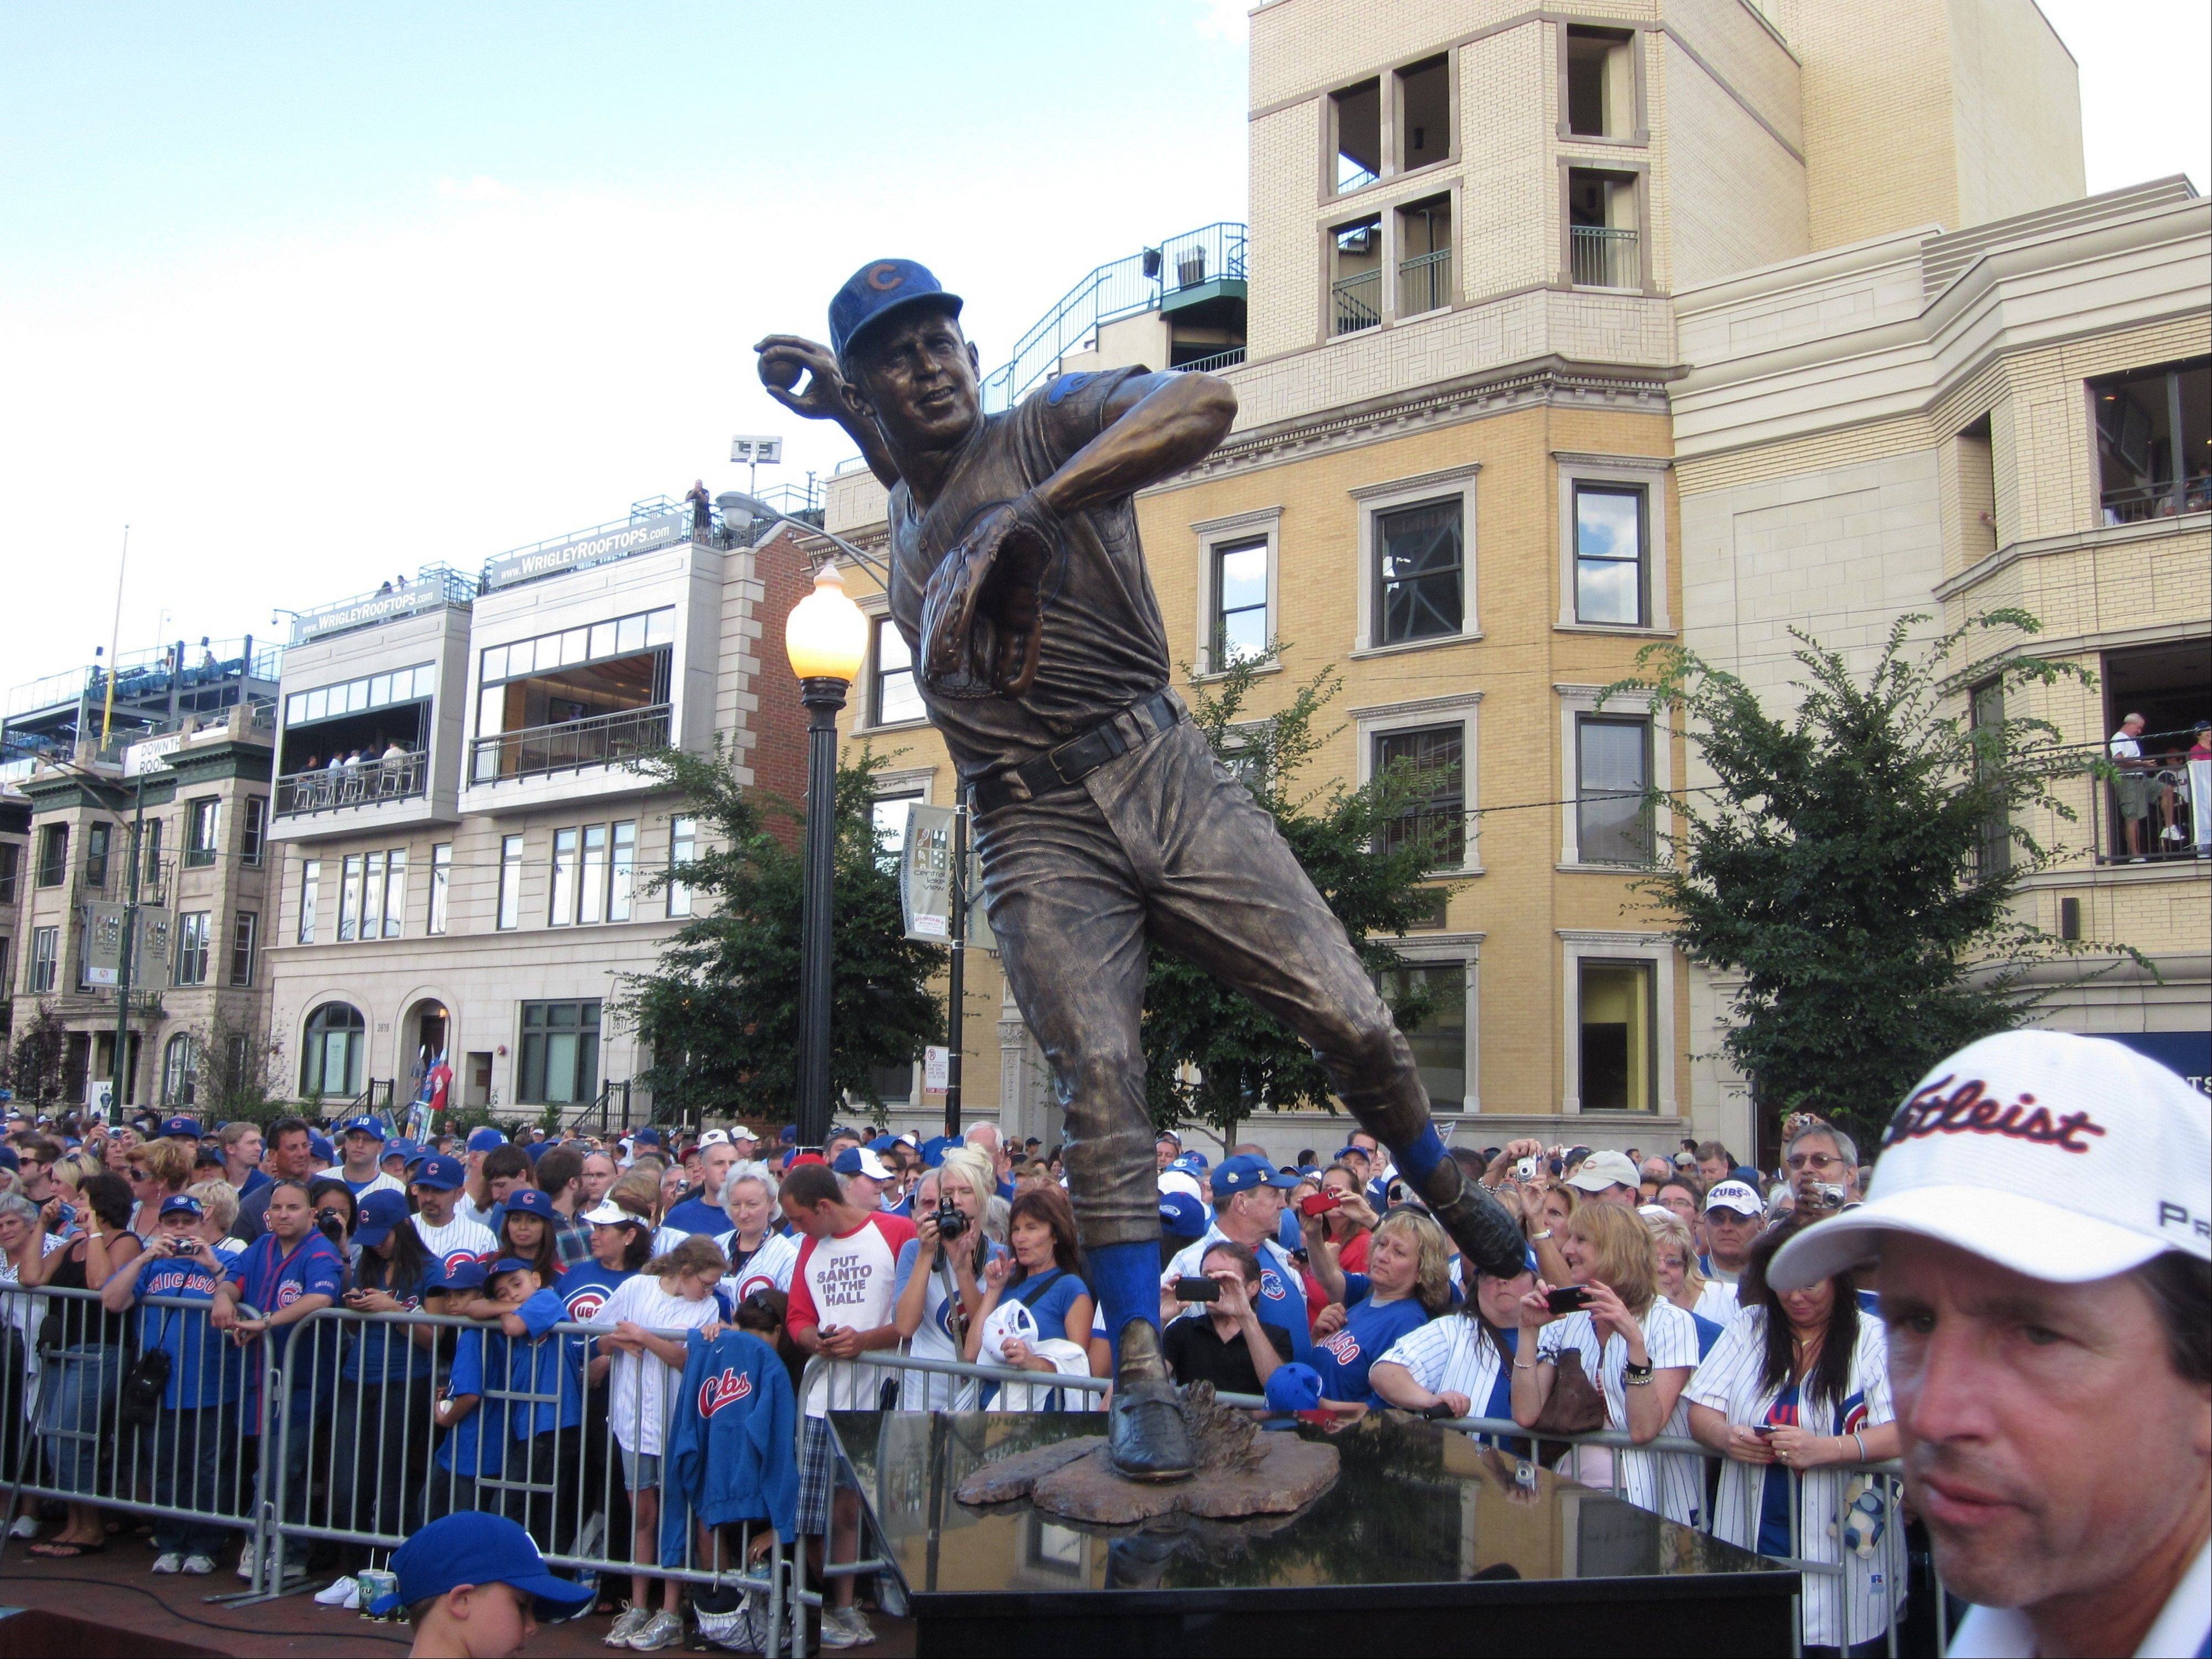 Fans gather outside Wrigley Field for the unveiling ceremony of the Ron Santo statue.